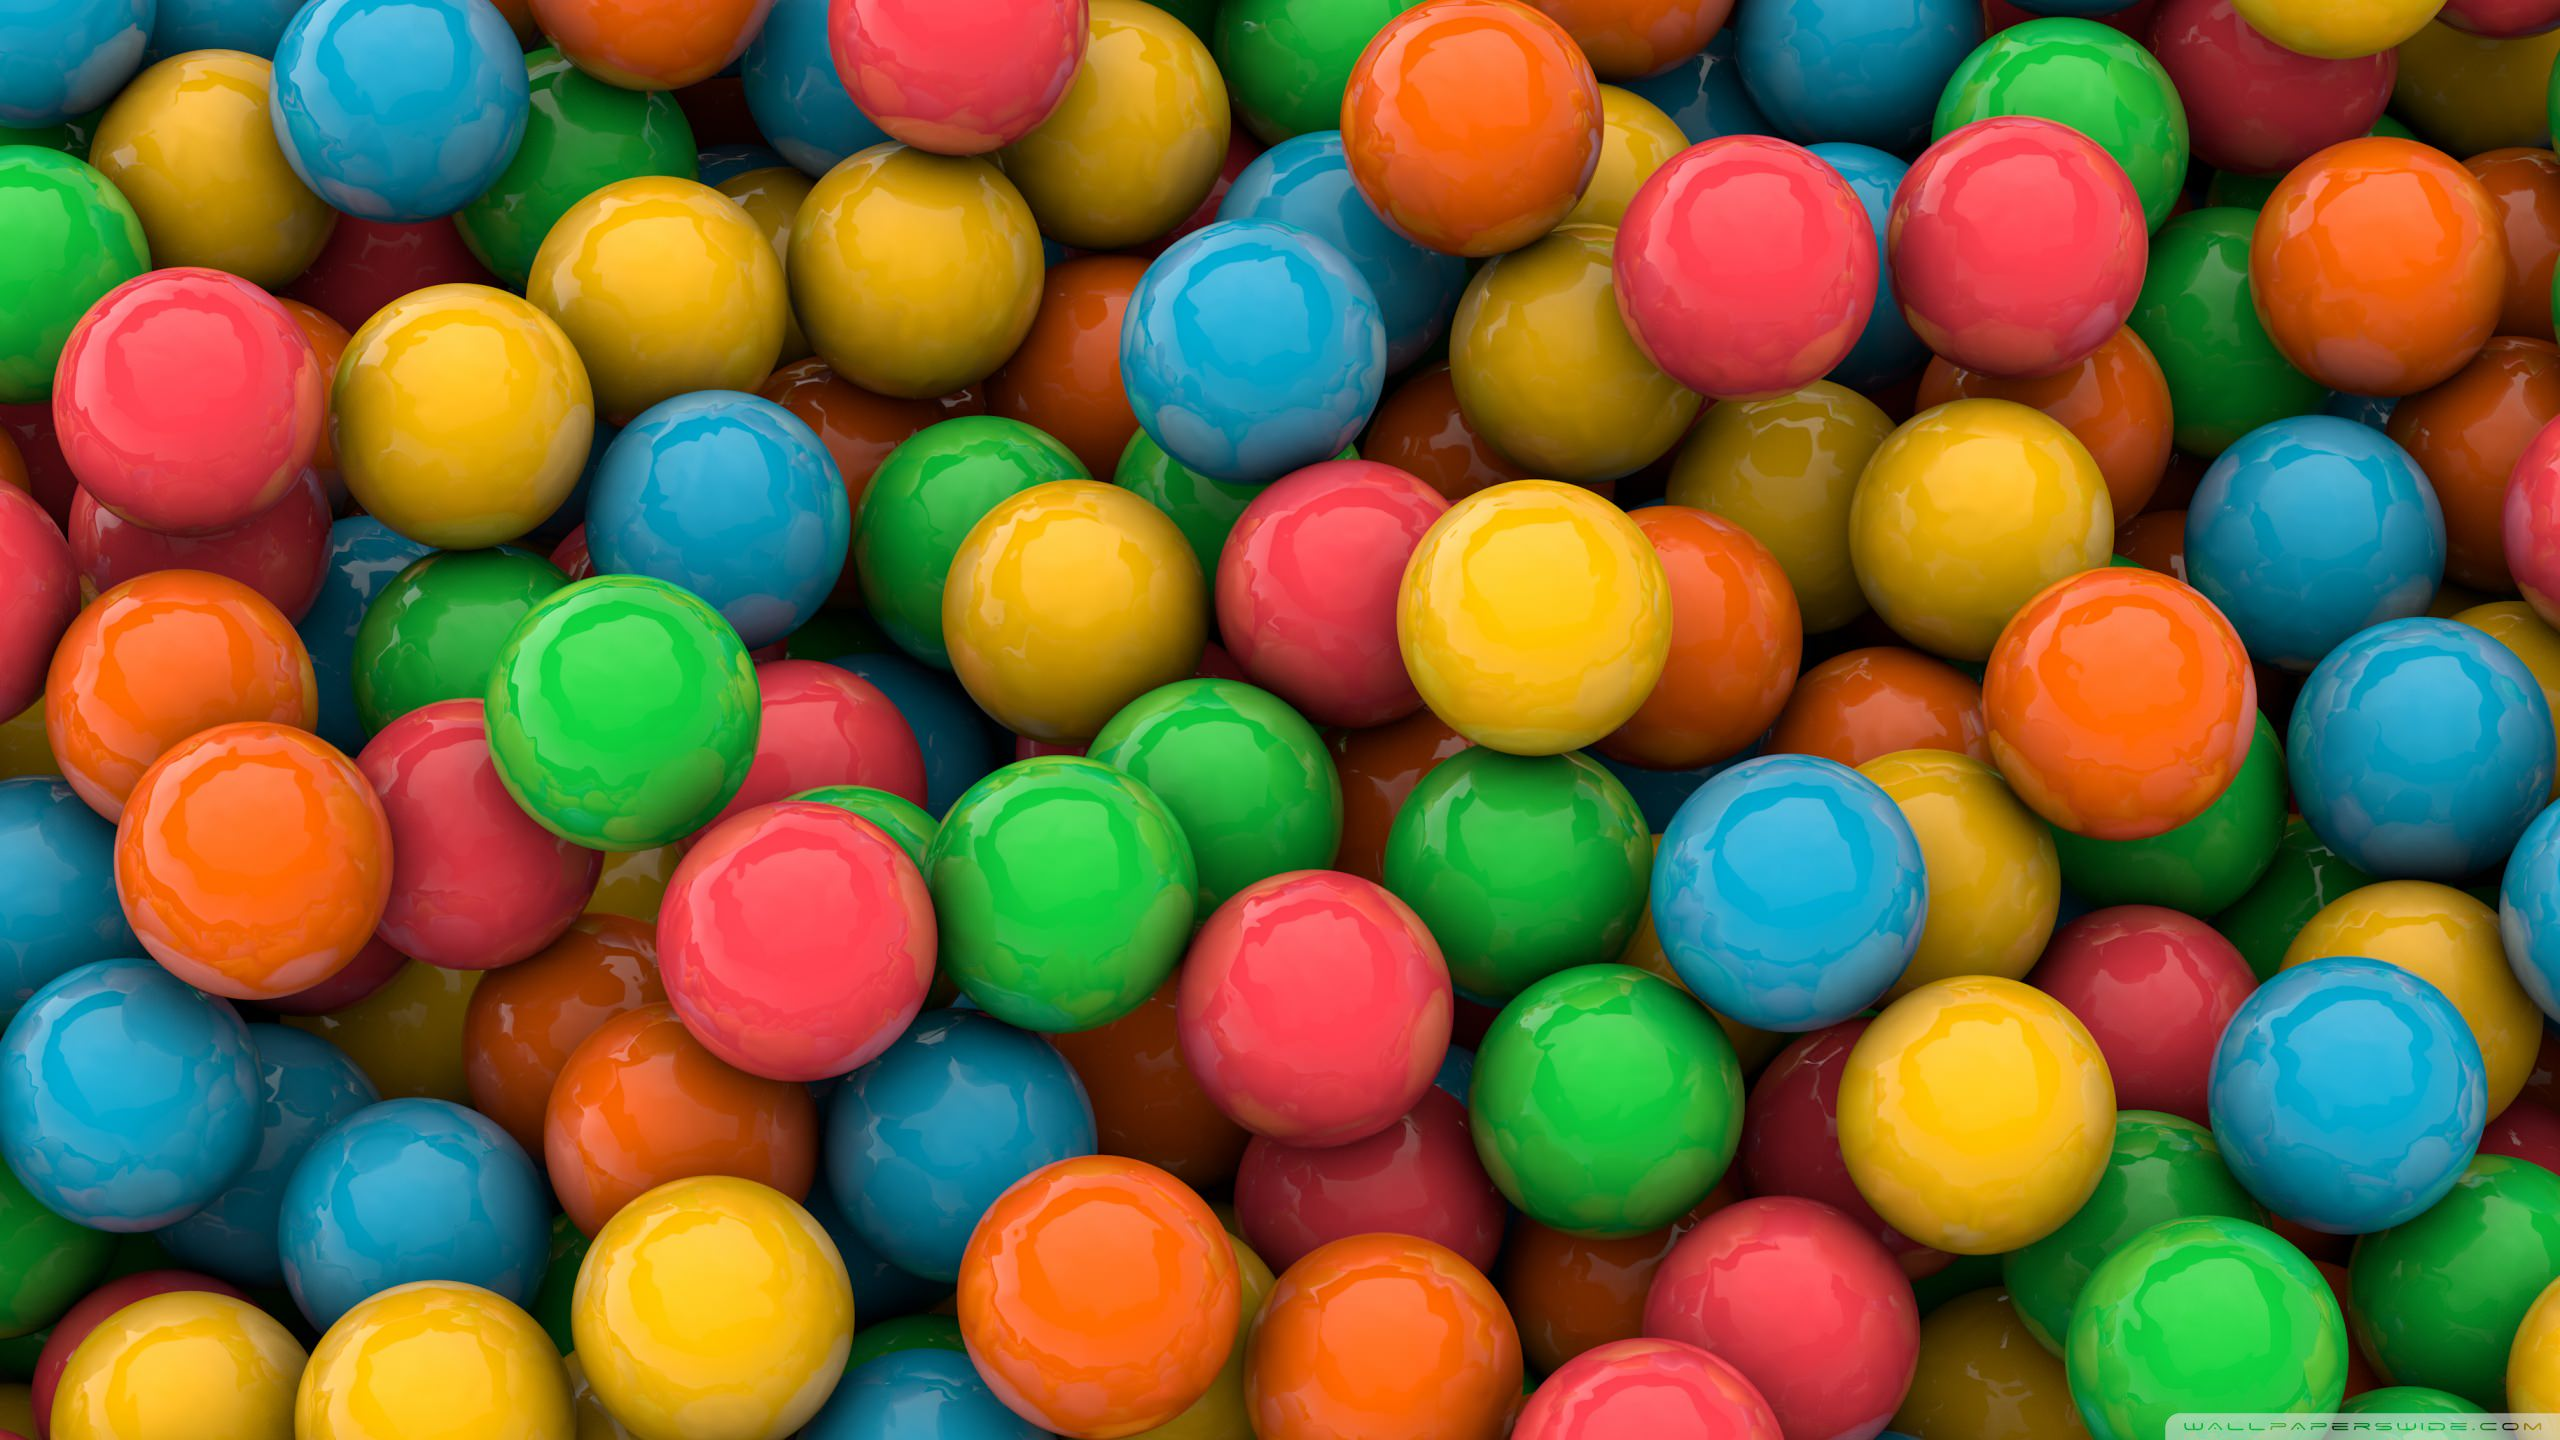 food candy wallpaper